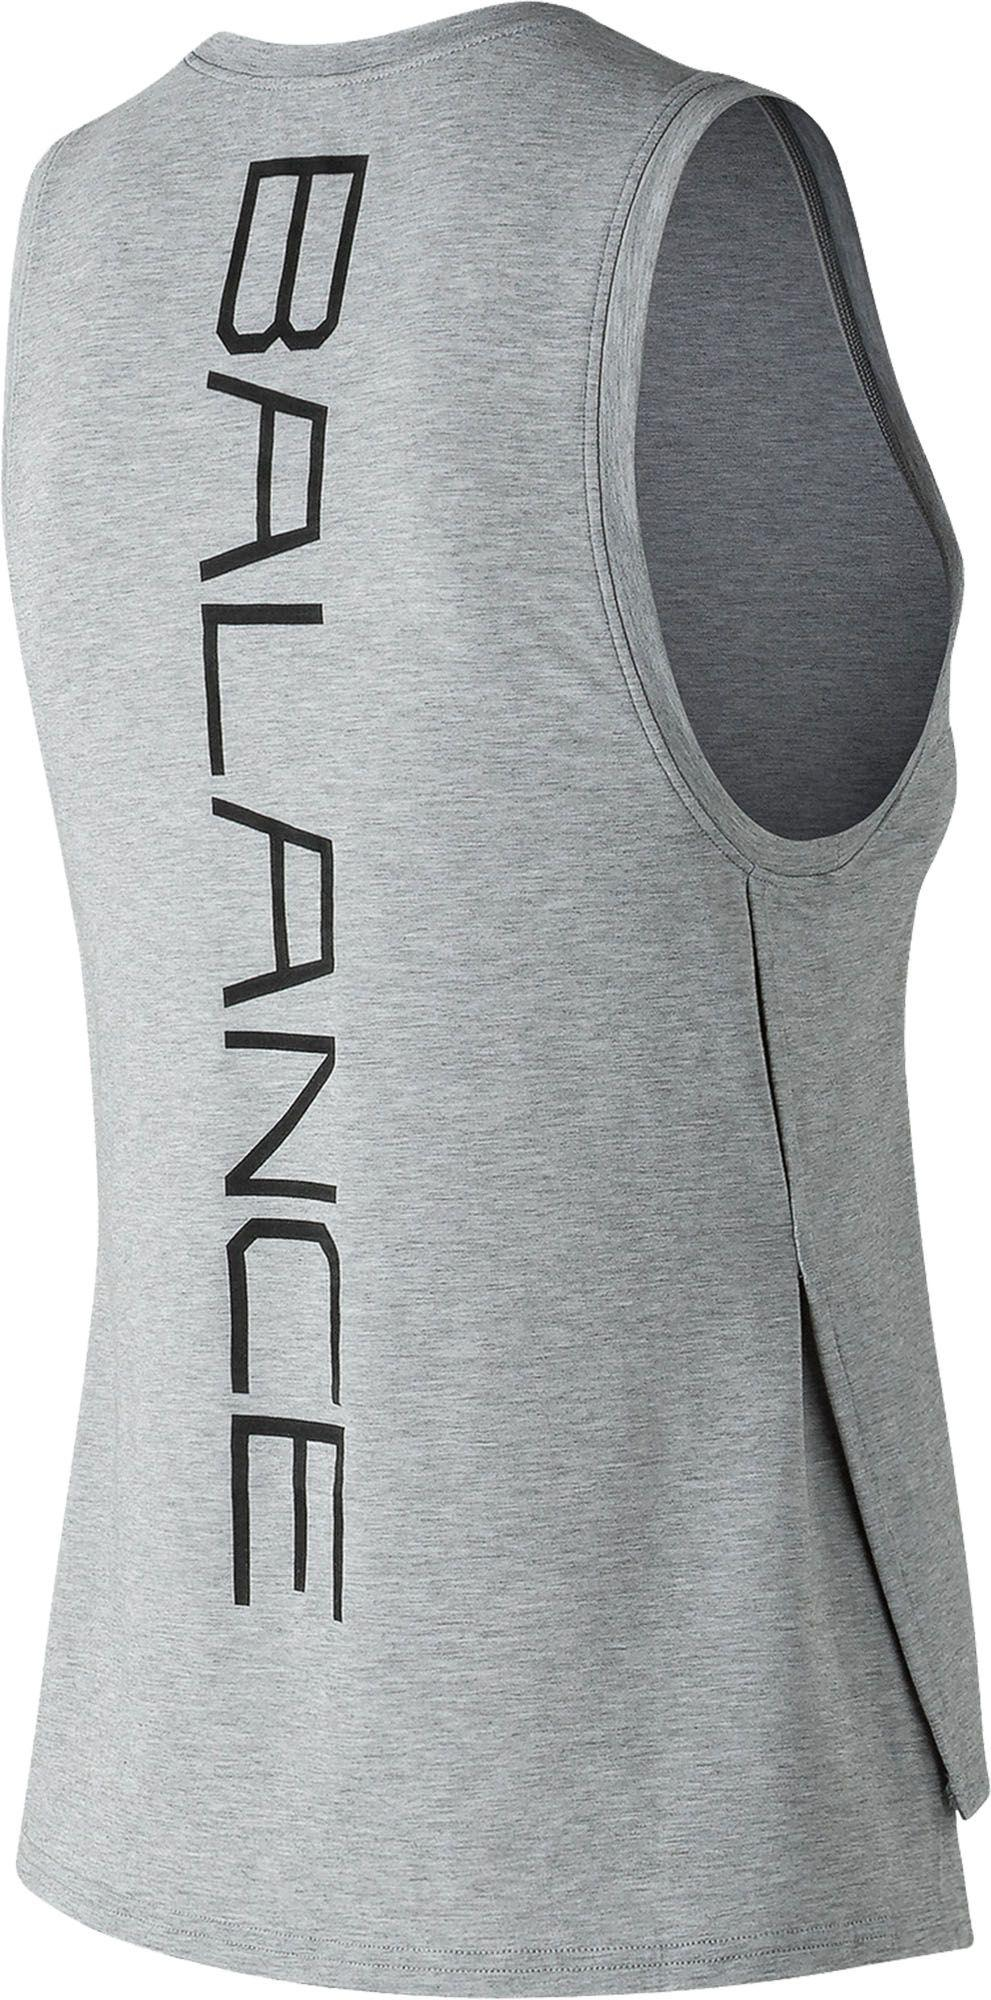 730b3c8f026ec Lyst - New Balance Graphic Layering Tank Top in Gray